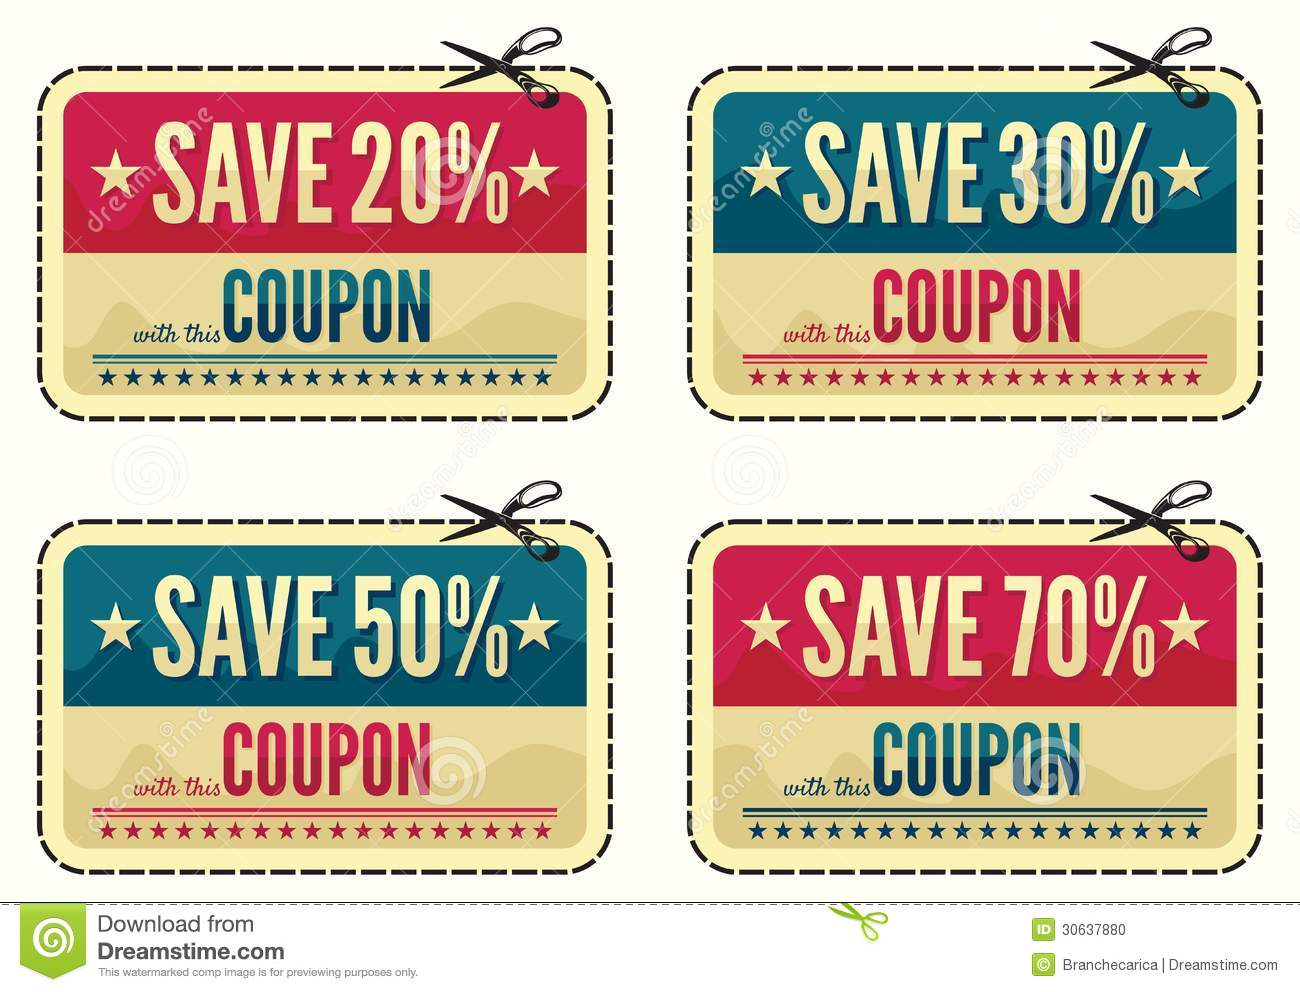 How to Buy Online With Coupon Codes - StepsFind a coupon code for the vendor and item you want to trailfilmzwn.cf can also find coupons codes on coupon-providing websites like Retailmenot, trailfilmzwn.cf, trailfilmzwn.cf, trailfilmzwn.cf the shopping website where you want to buy trailfilmzwn.cf the checkout process as normal for the site where you are trailfilmzwn.cf through the checkout process. (3 more items).